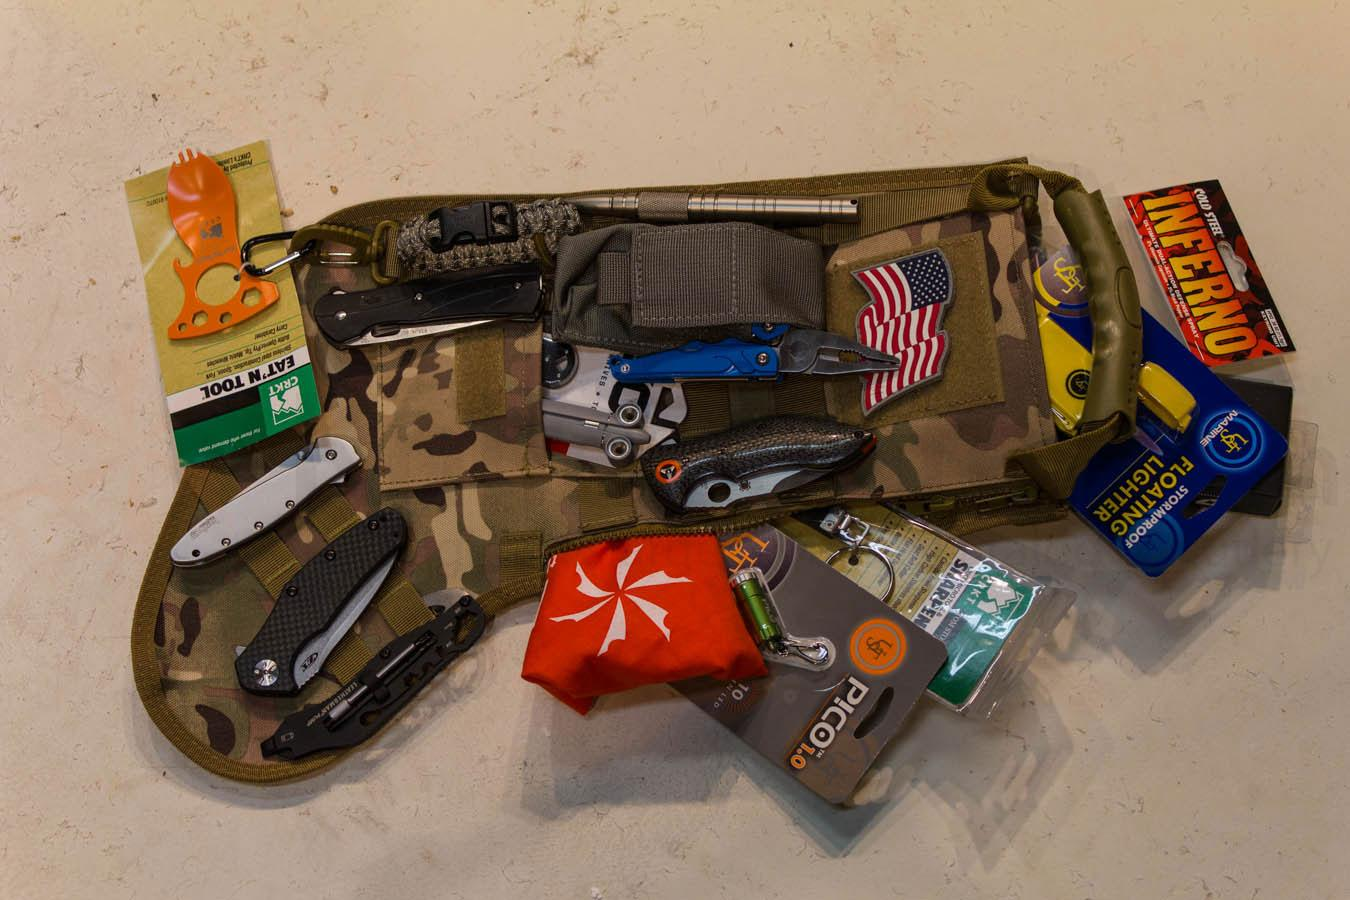 Tactical Christmas Stocking.Genpro Ruckup Navy Blue Camo Tactical Christmas Stocking With Molle Attachment